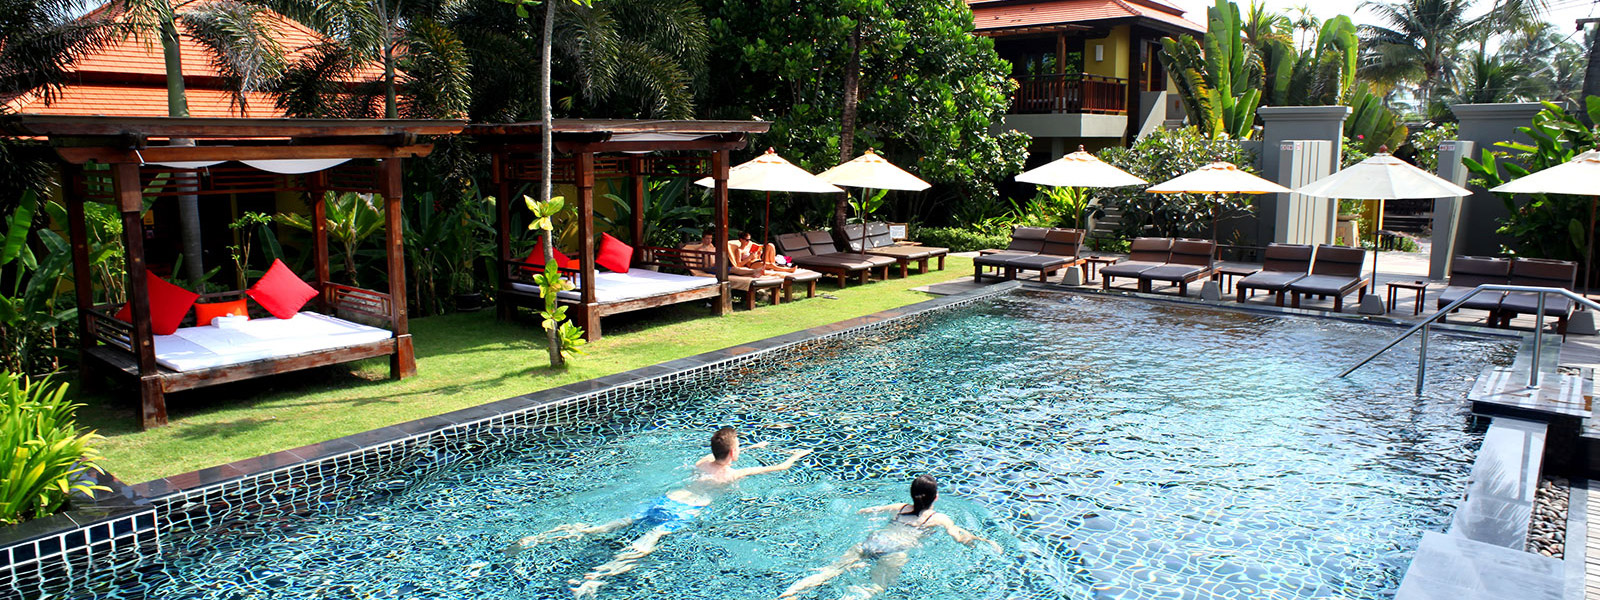 Chongfah Resort Khao Lak - Services & Facilities